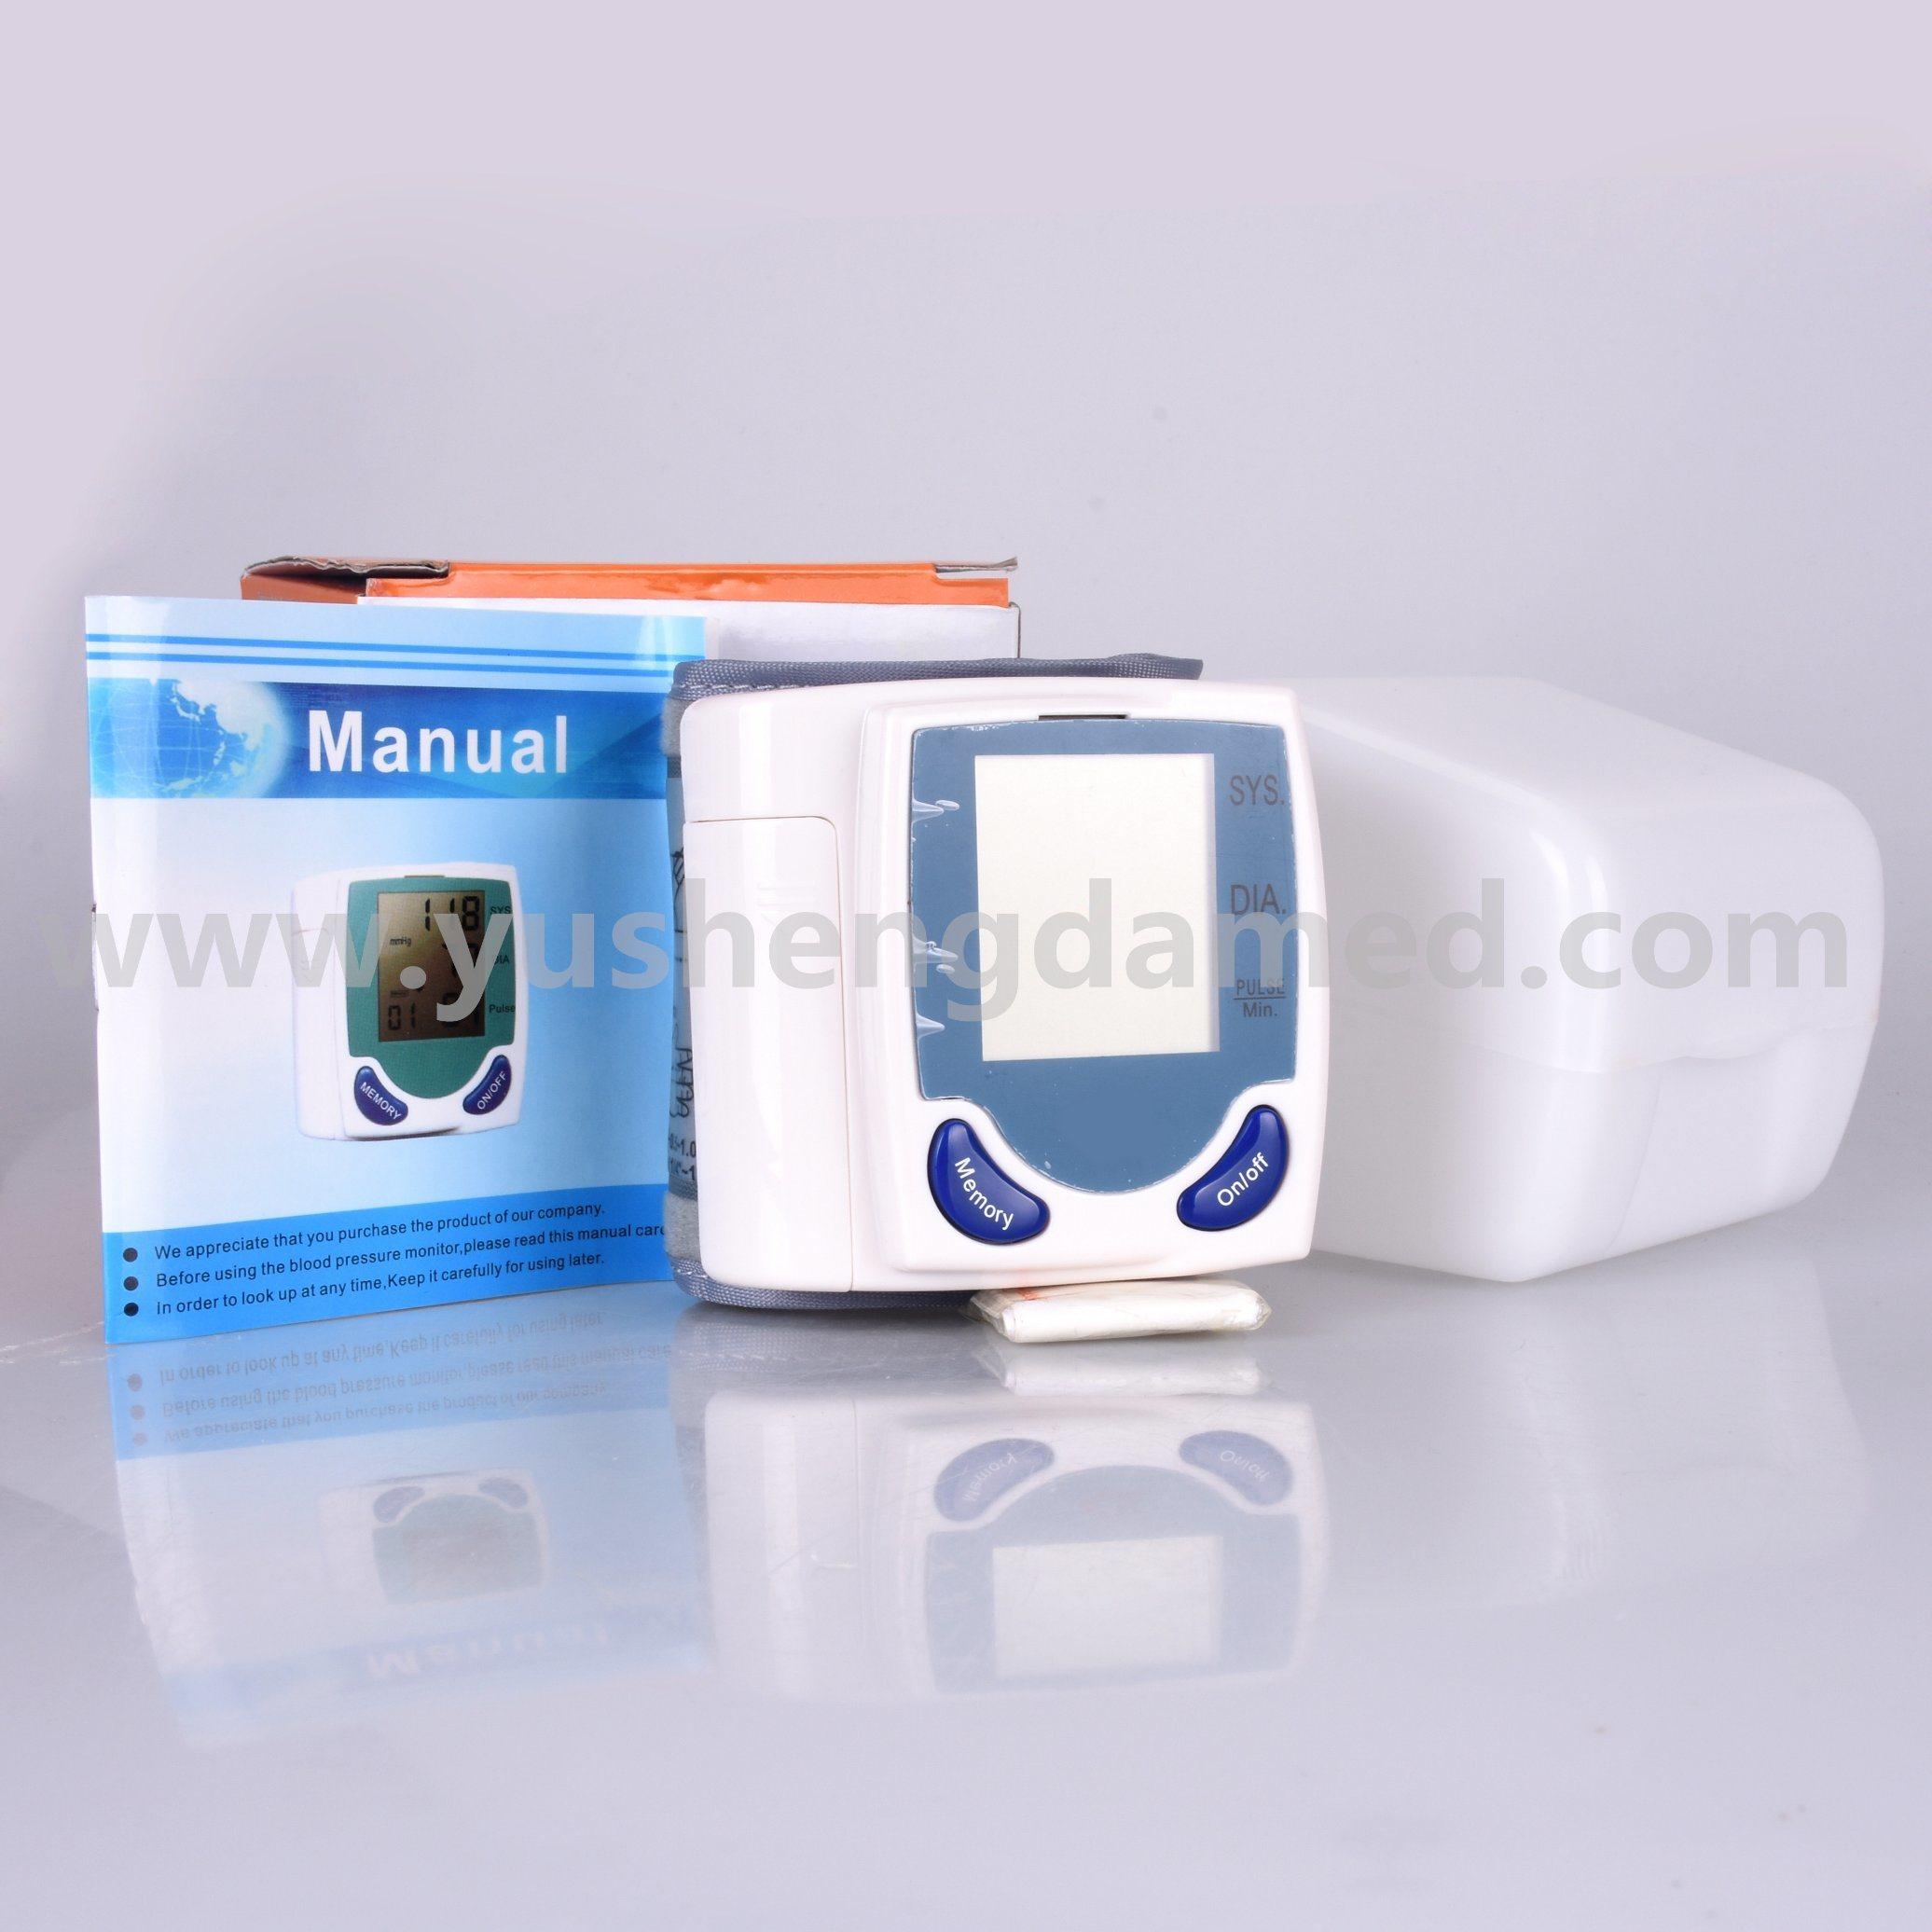 Hospital Equipment Automatic Arm Type Digital Blood Pressure Monitor